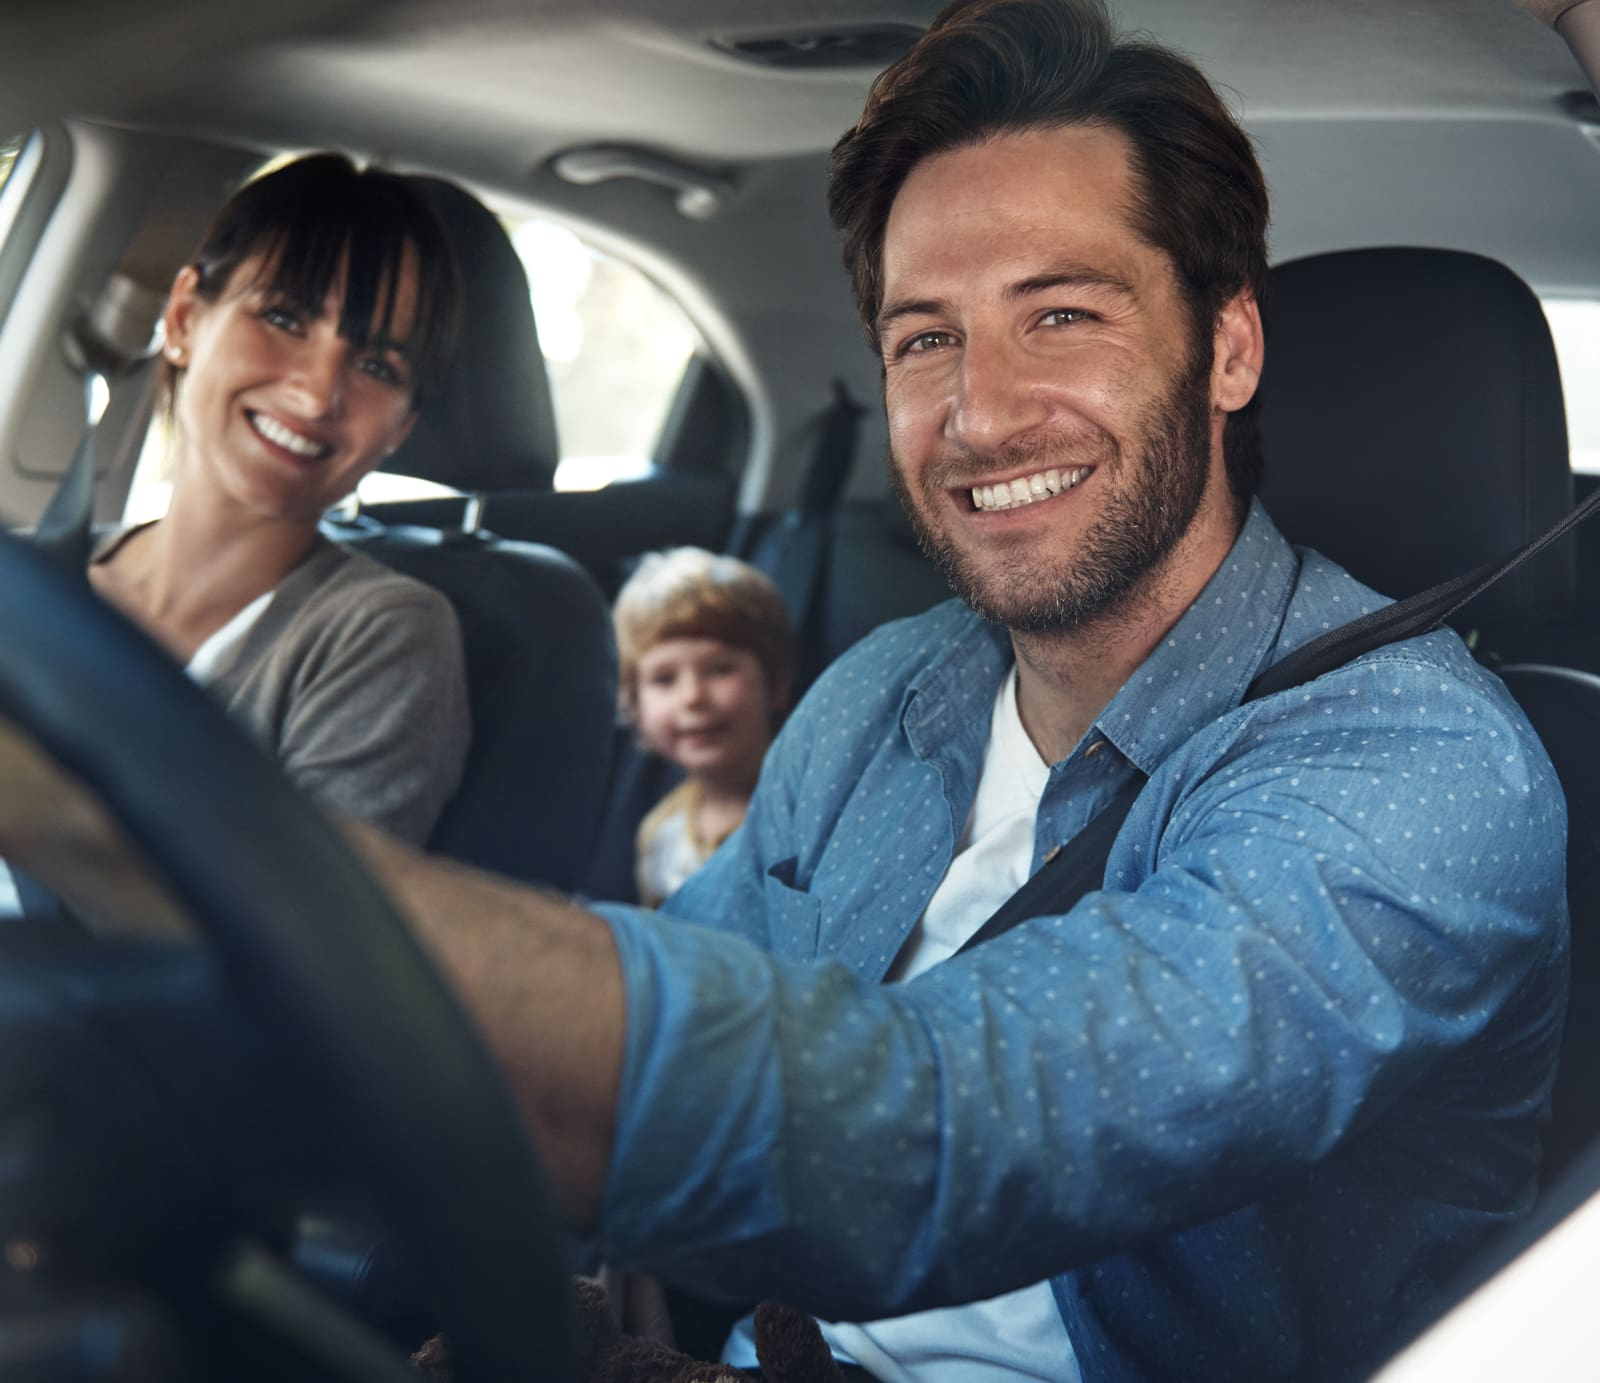 Auto Insurance for Low-Income Individuals and Families